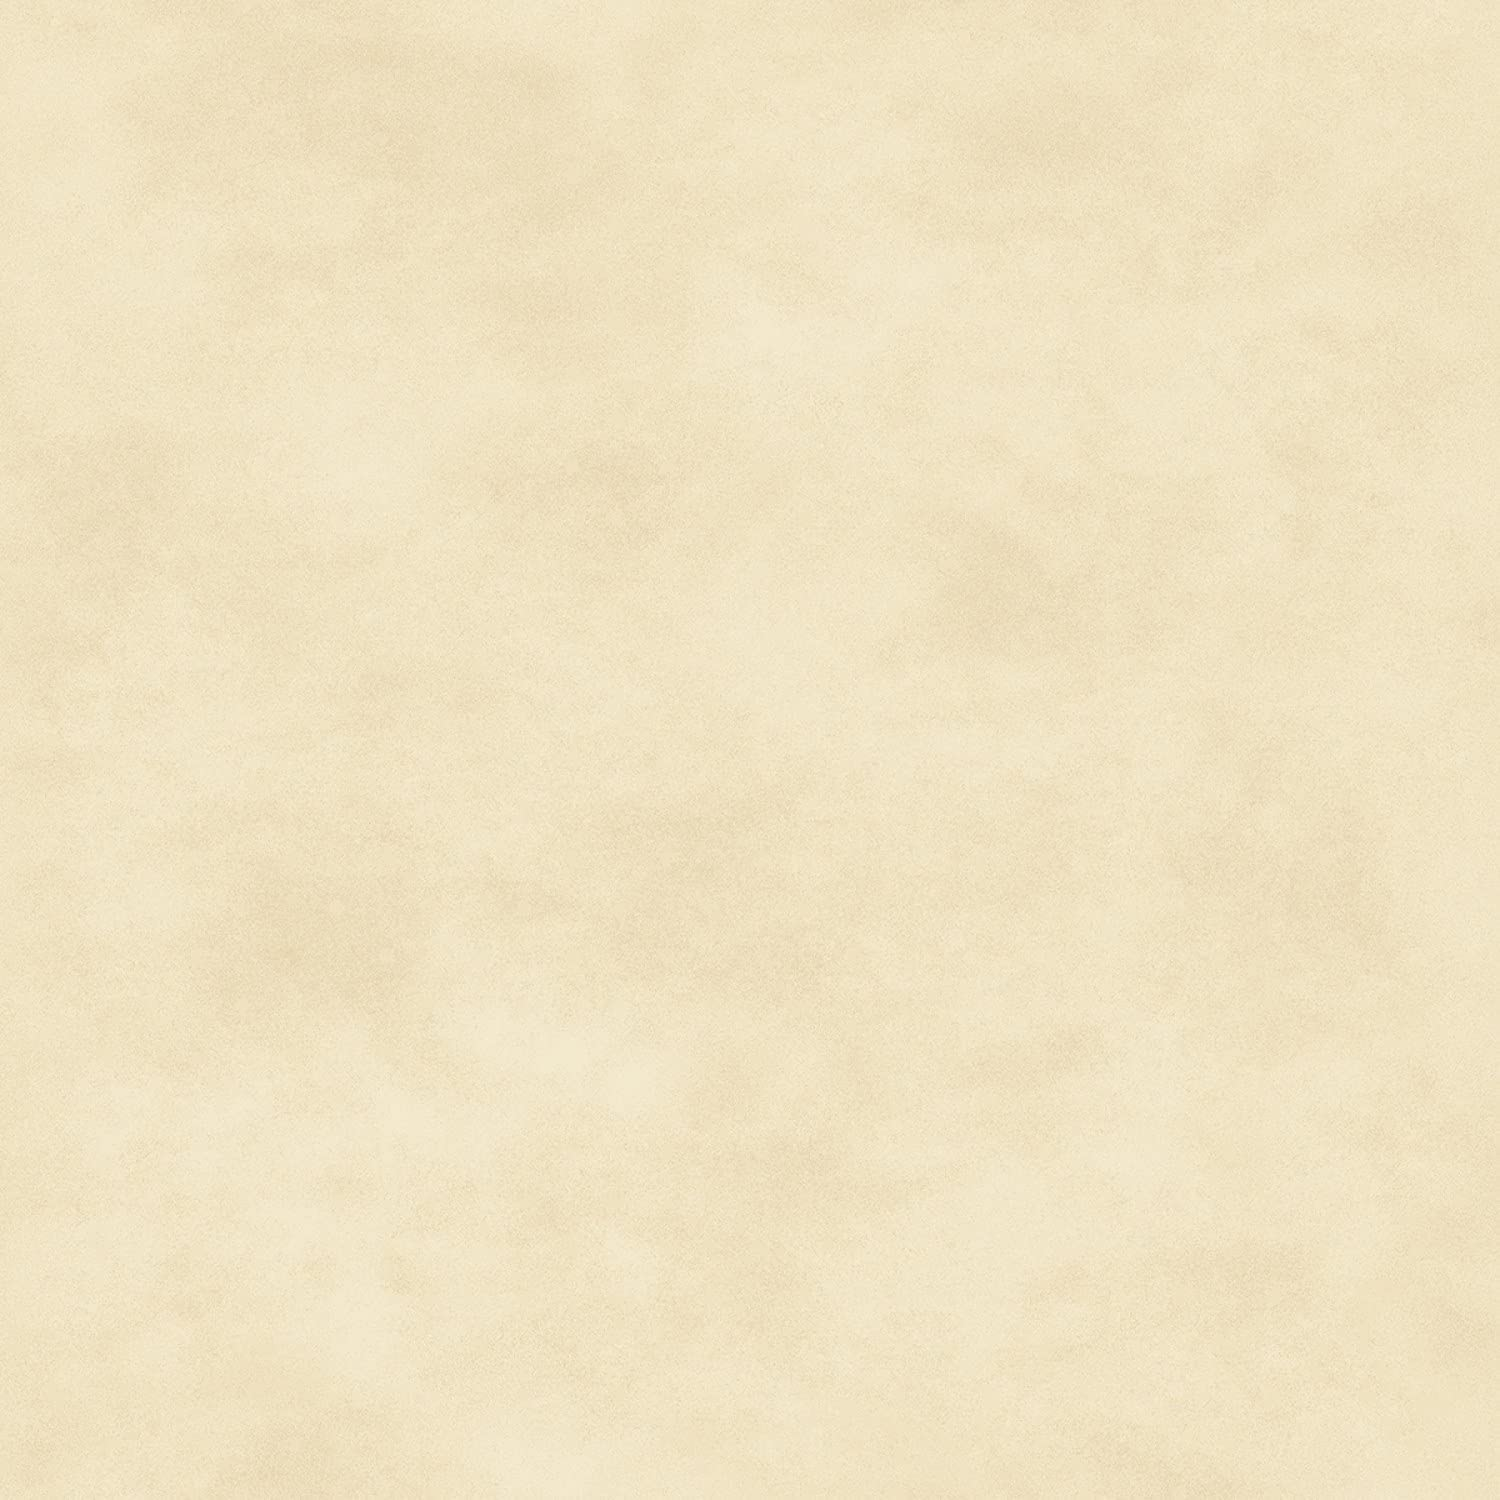 Shadow Play 513-E4, Cream Tonal, Blender, Background Fabric, Maywood, 100% Cotton, by The Yard